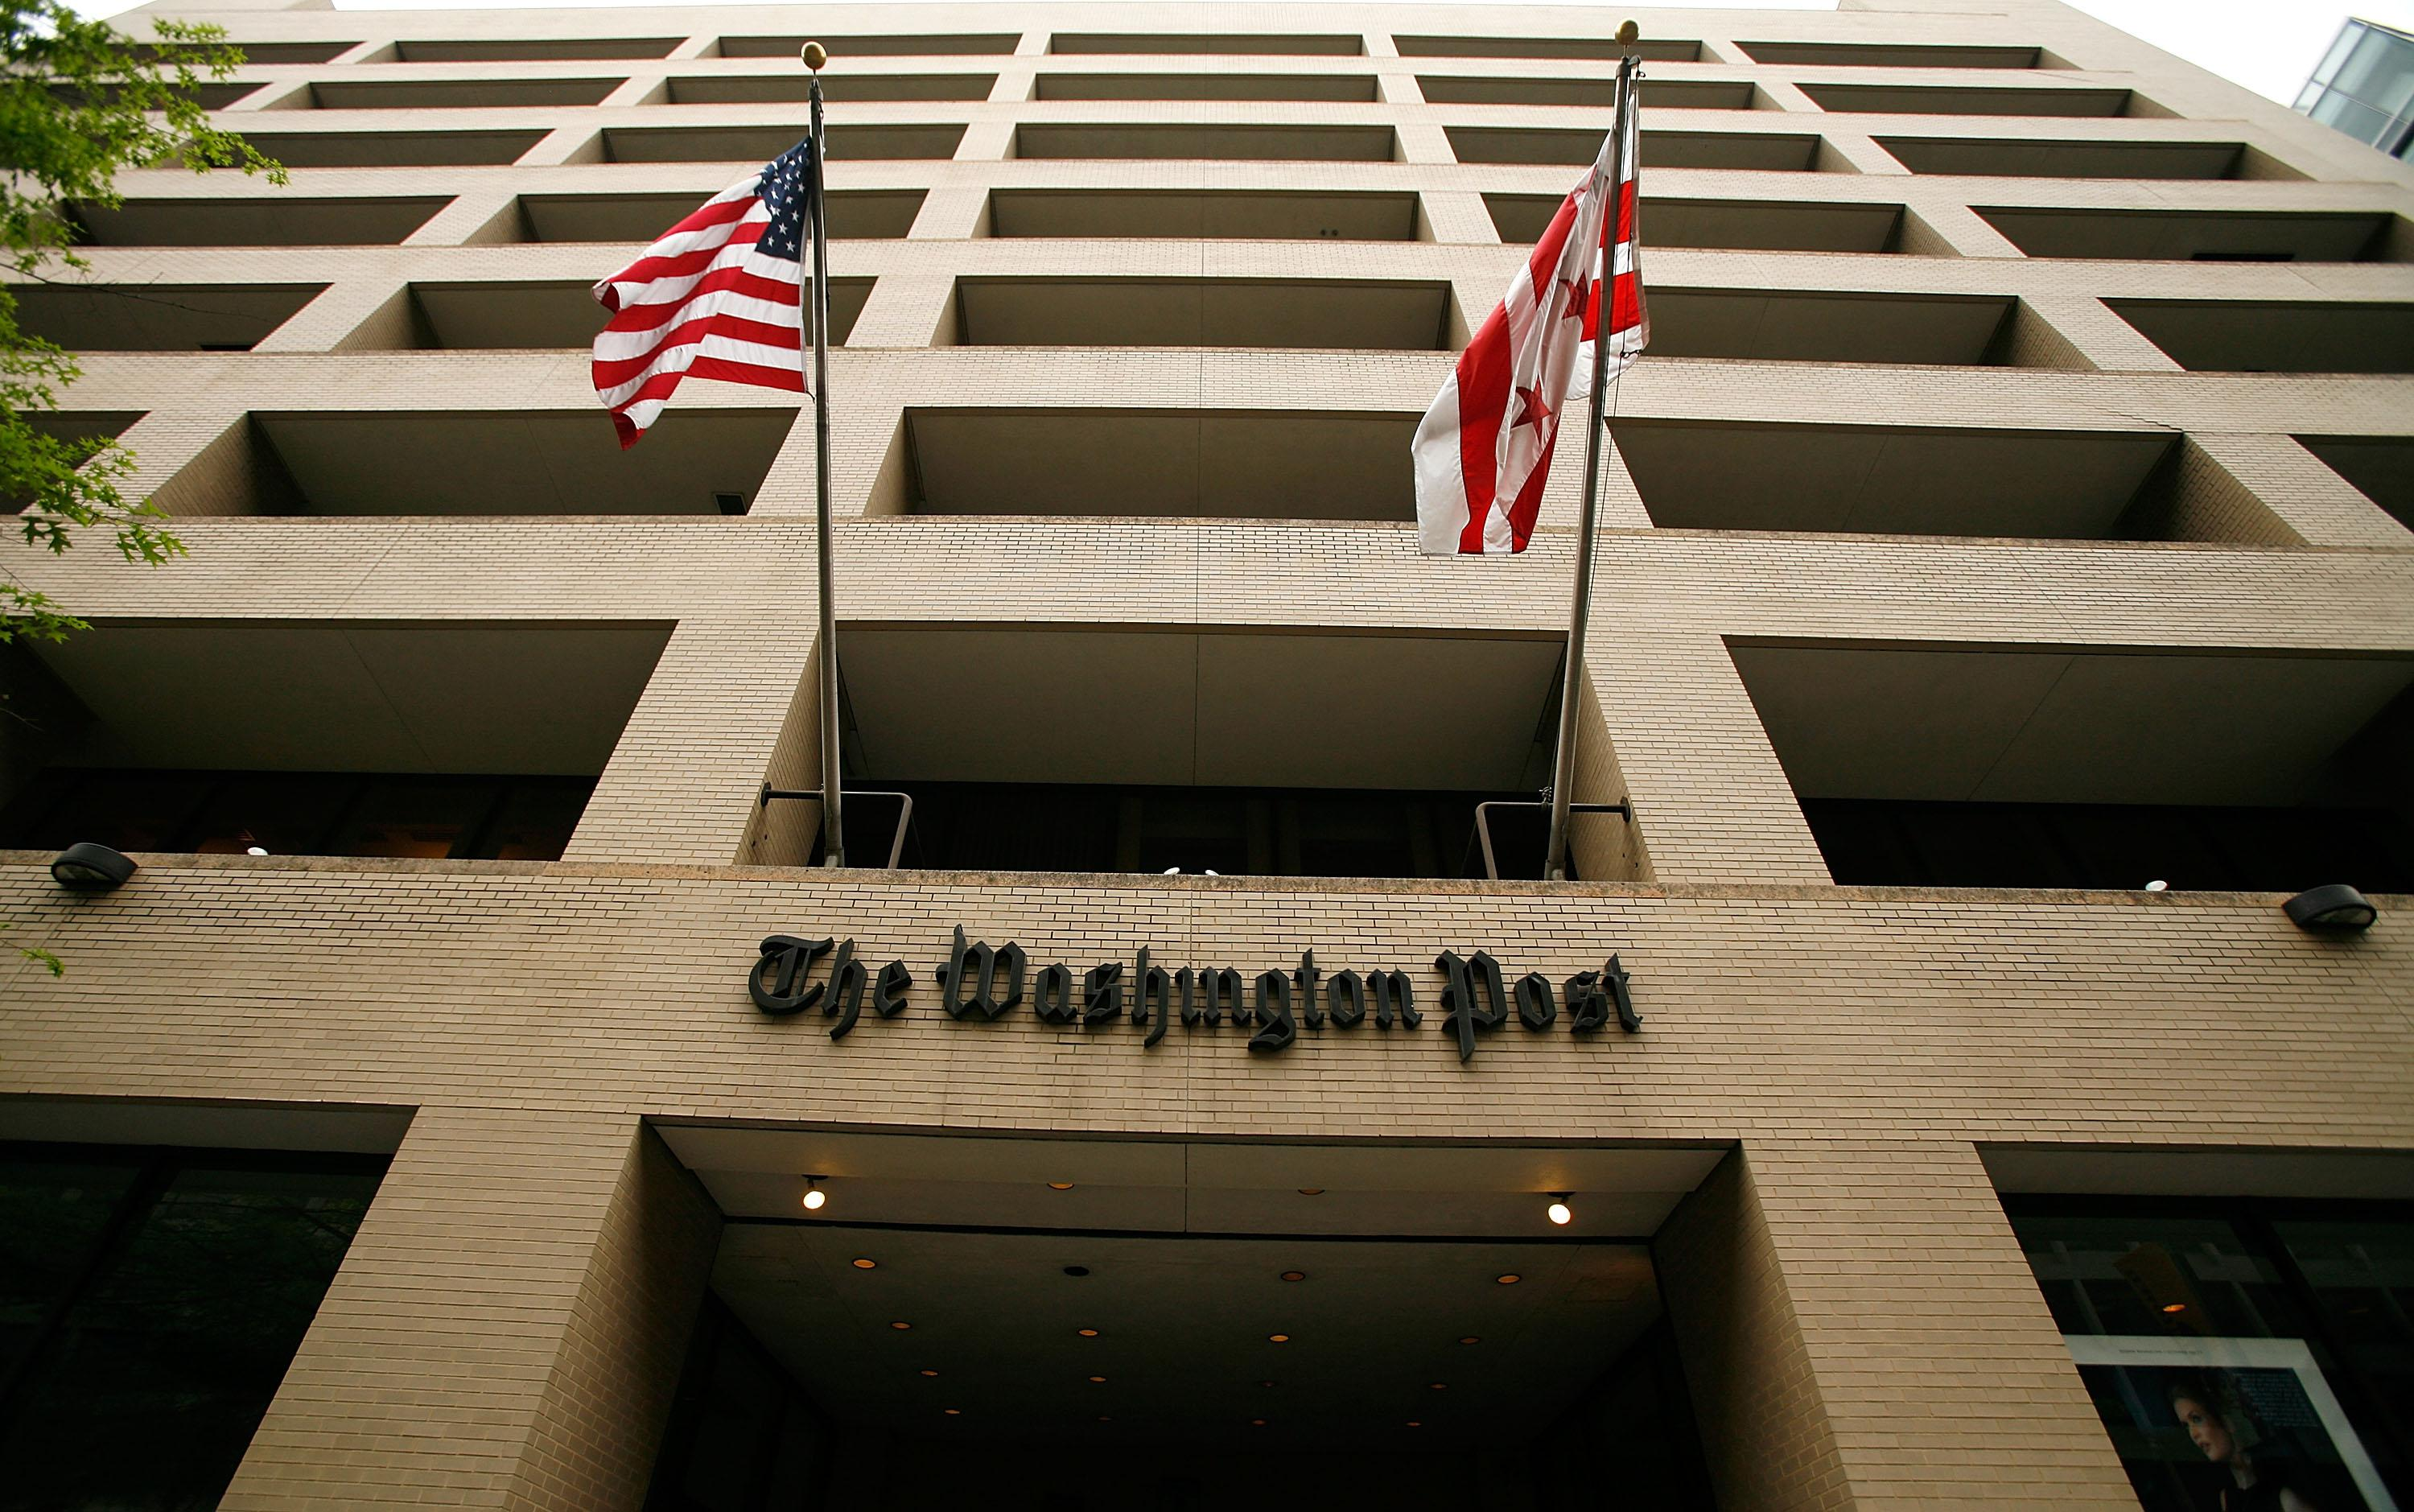 Flags wave in front of the Washington Post building on May 1, 2009, in Washington, D.C. The newspaper has announced its first-quarter earnings with a net loss of $19.5 million.